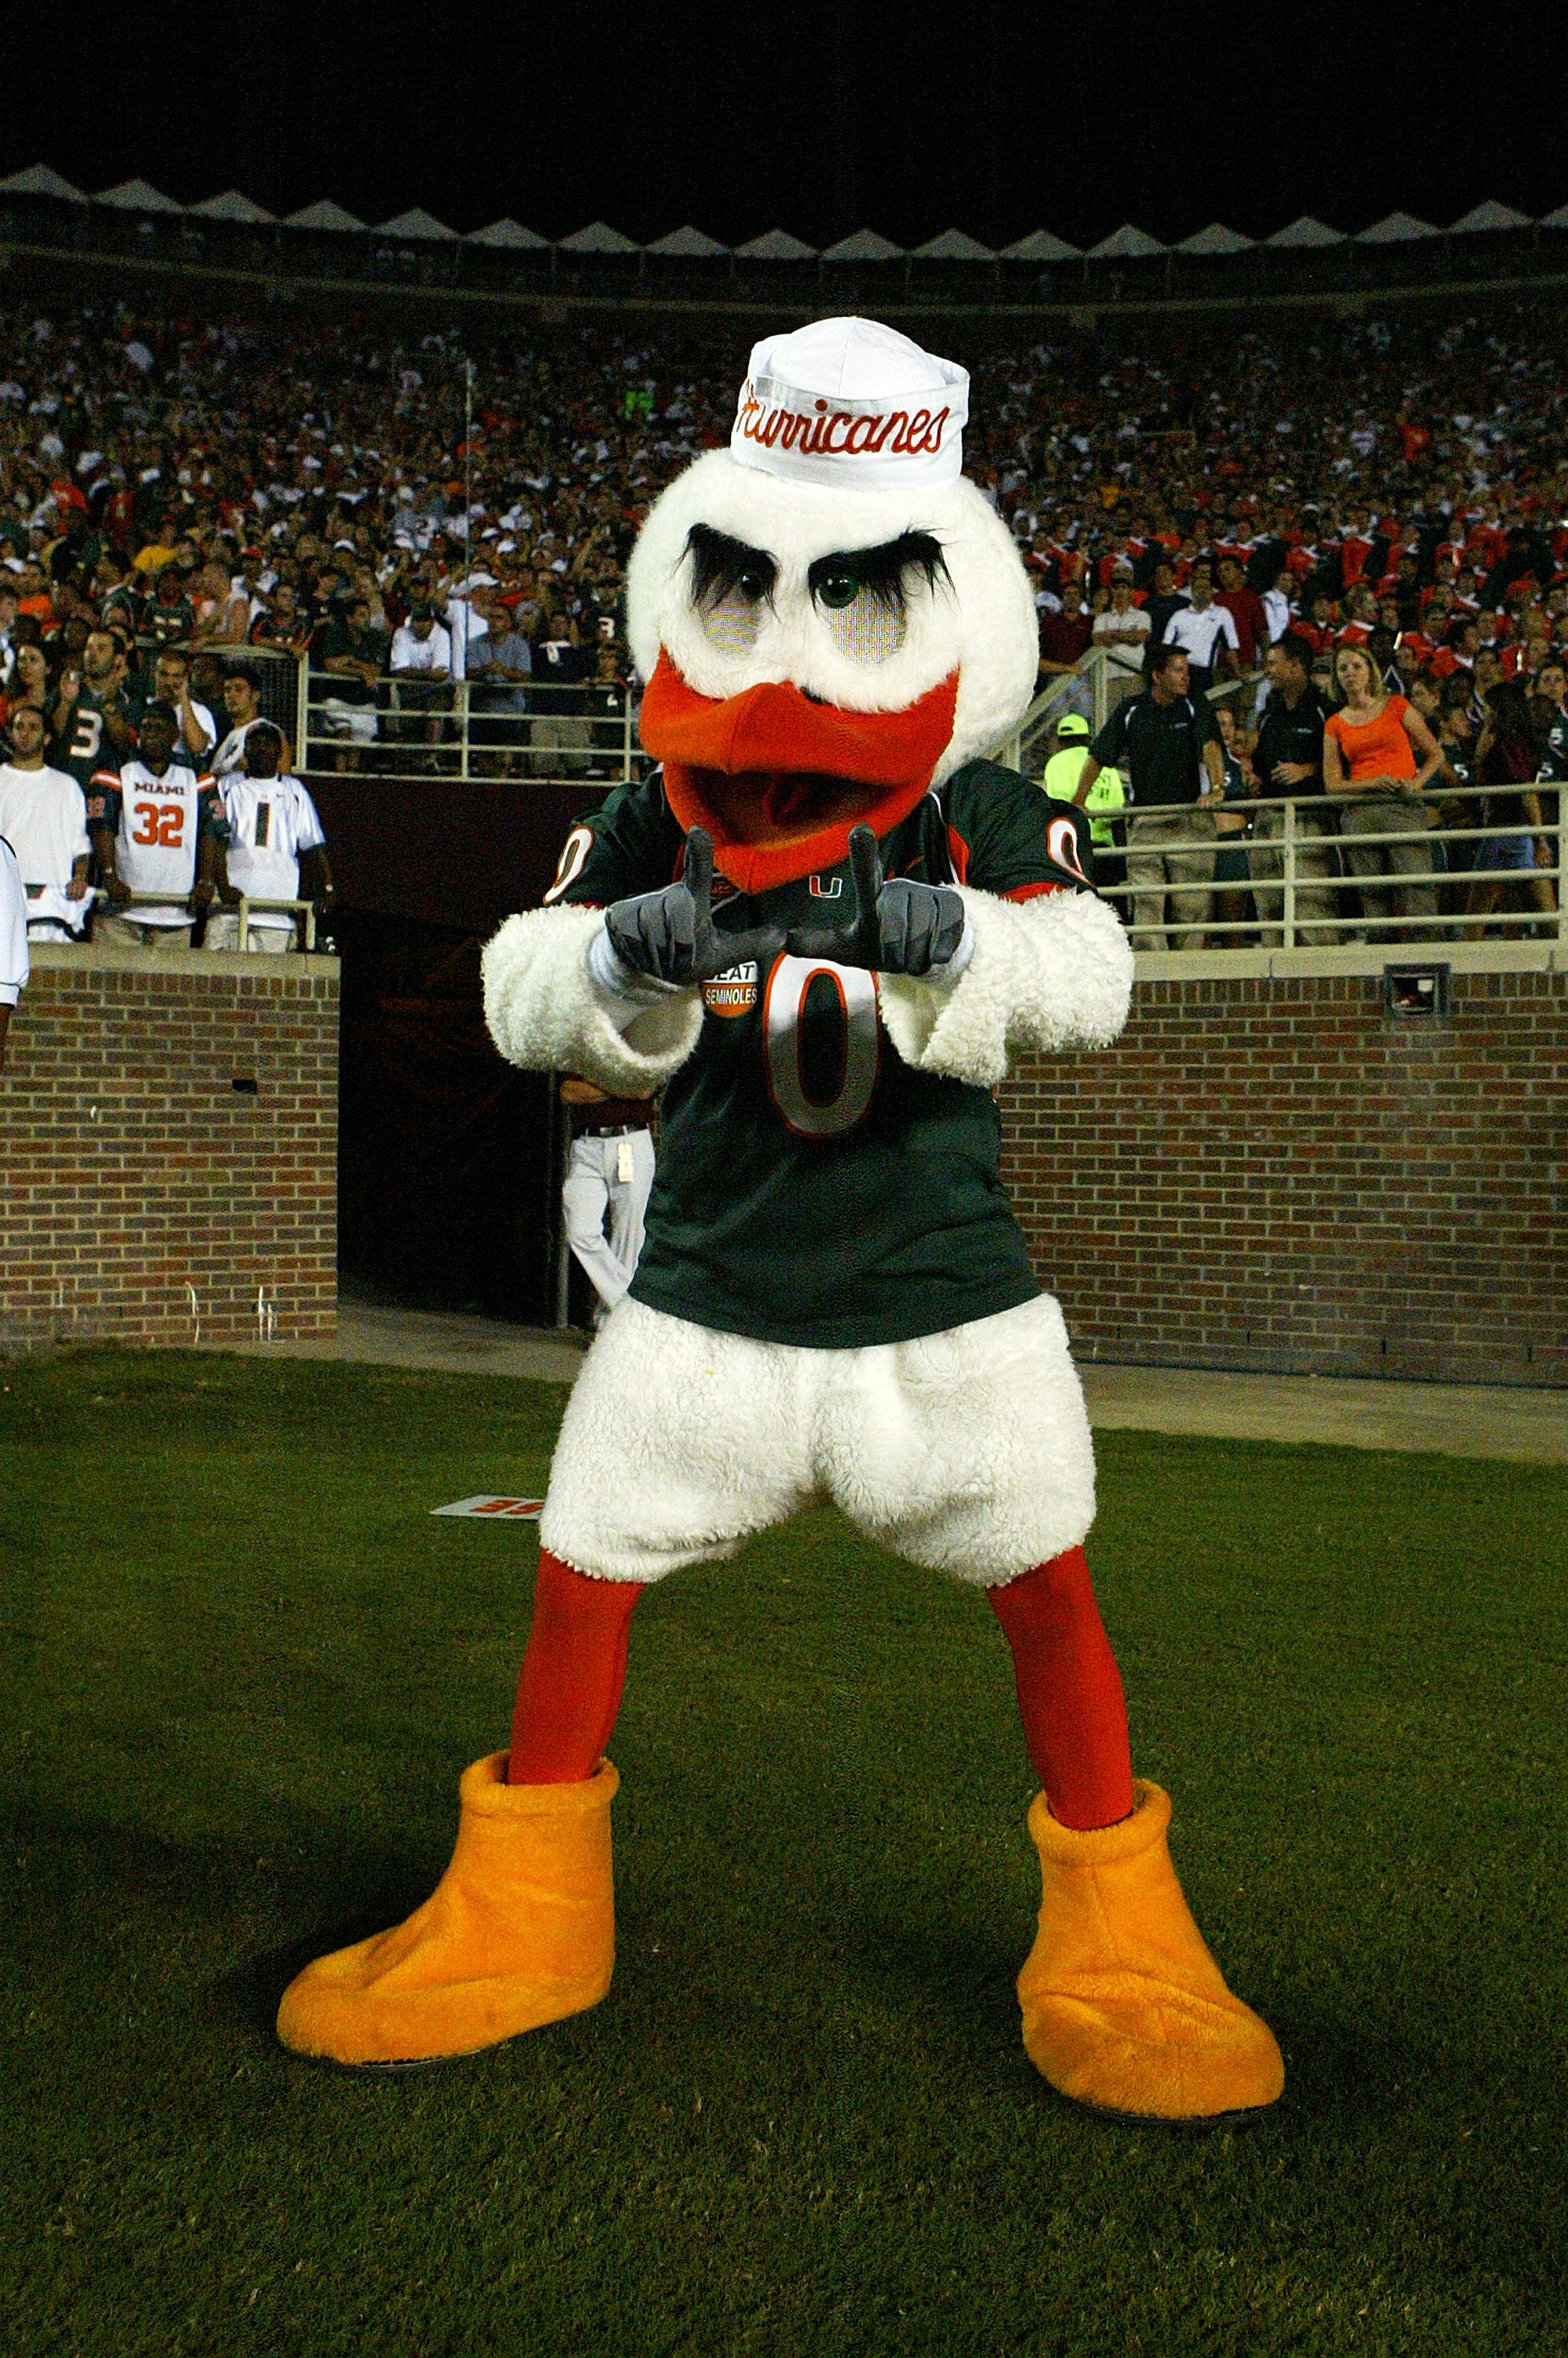 TALLAHASSEE, FL - SEPTEMBER 05:  Miami mascot Sebastian the ibis of the Miami Hurricanes works the crowd against the Florida State Seminoles at Doak Campbell Stadium on September 5, 2005 in Tallahassee, Florida.  (Photo by Doug Benc/Getty Images)